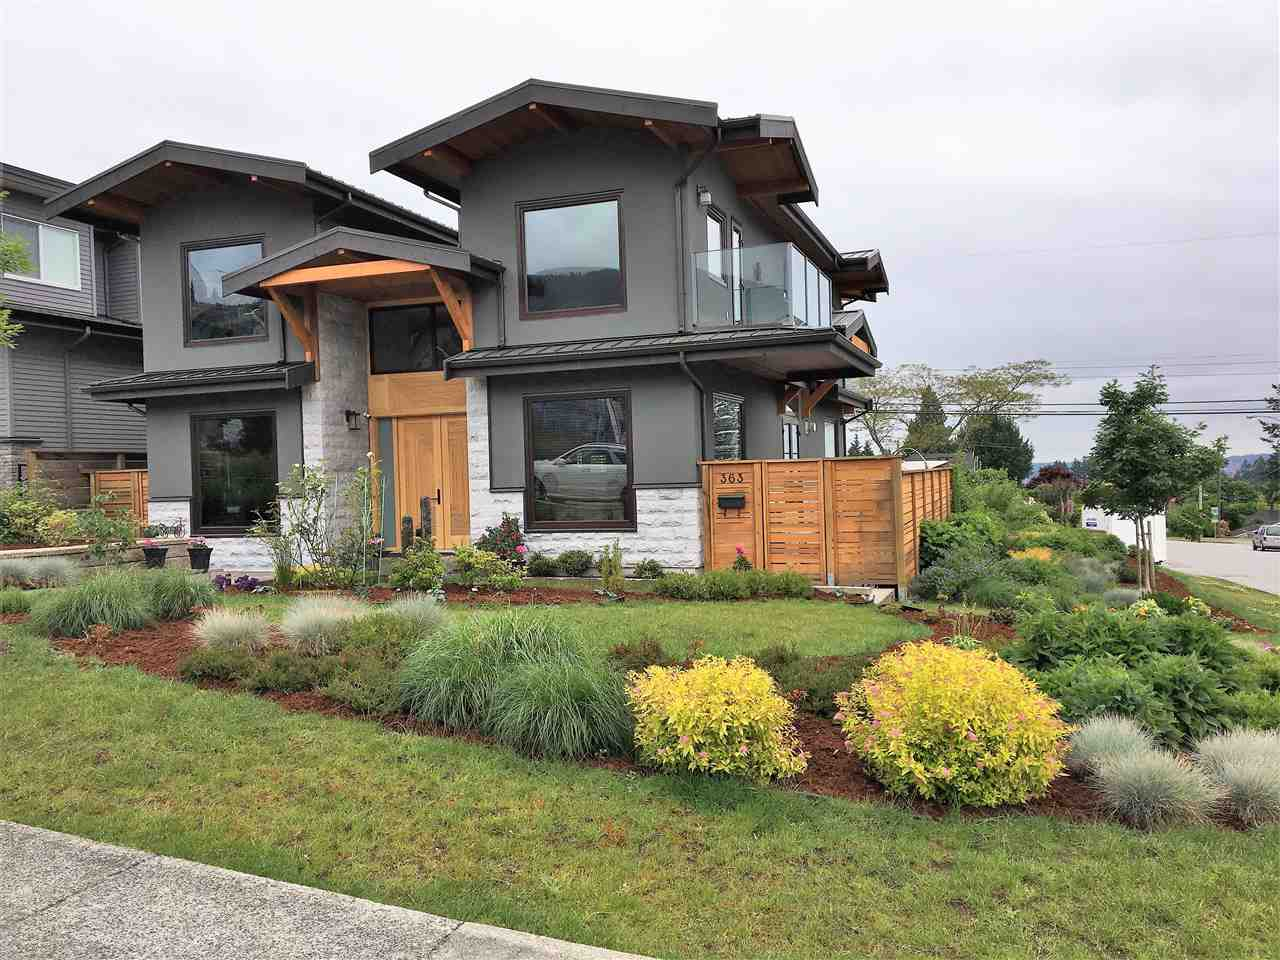 363 W 28TH STREET, North Vancouver, BC V7N 2J2